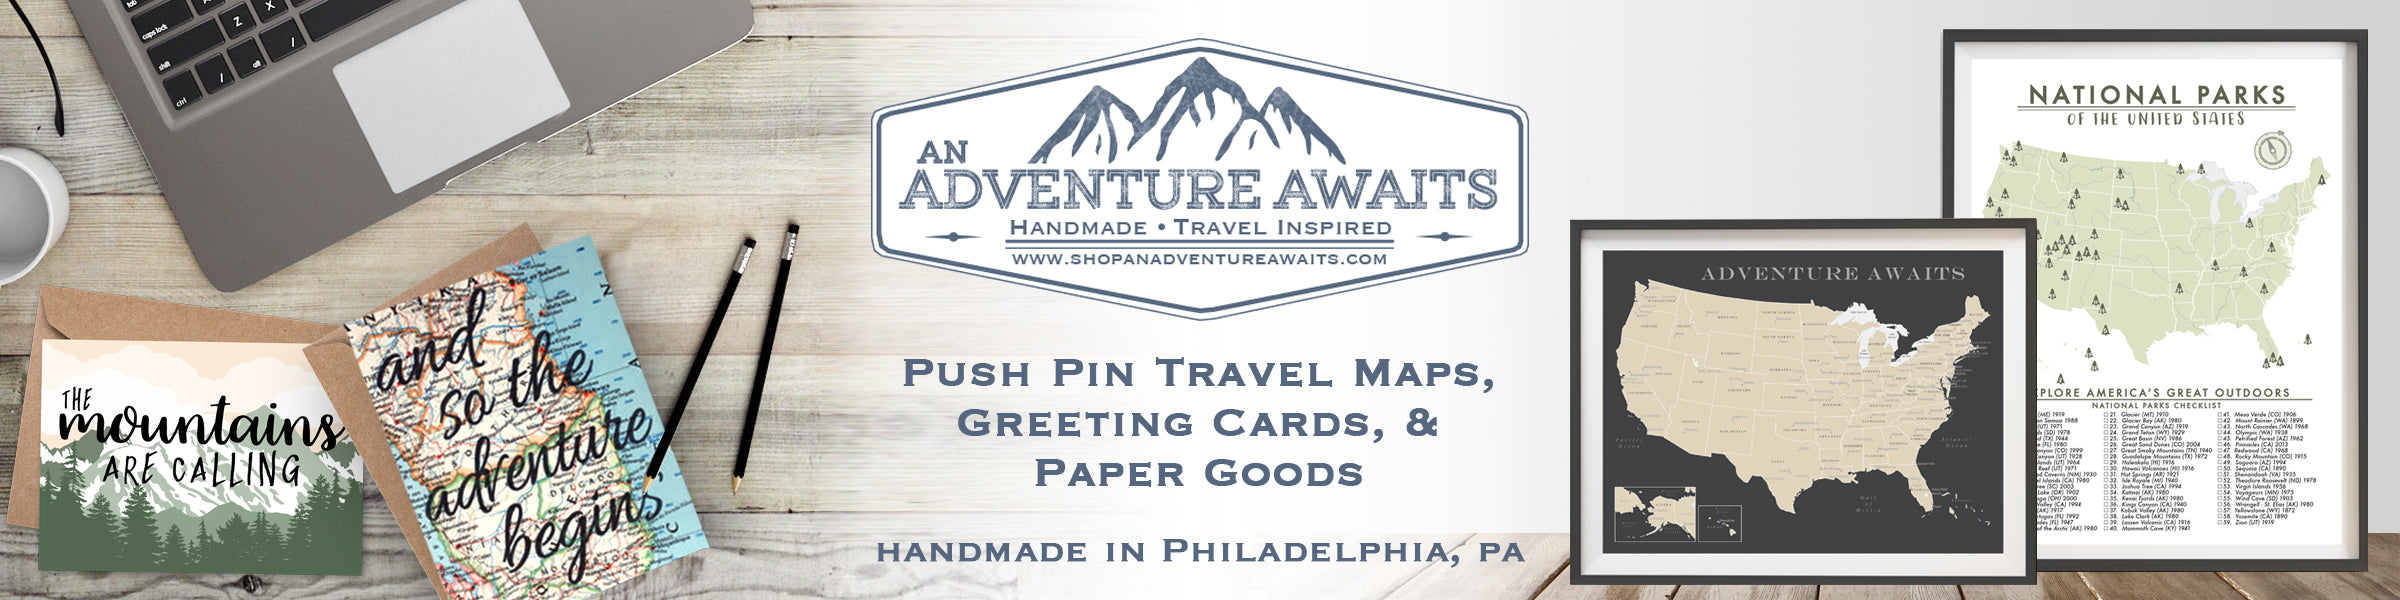 Push Pin Travel Maps Greeting Cards Paper Goods & Gifts.  Handmade in Philadelphia, PA